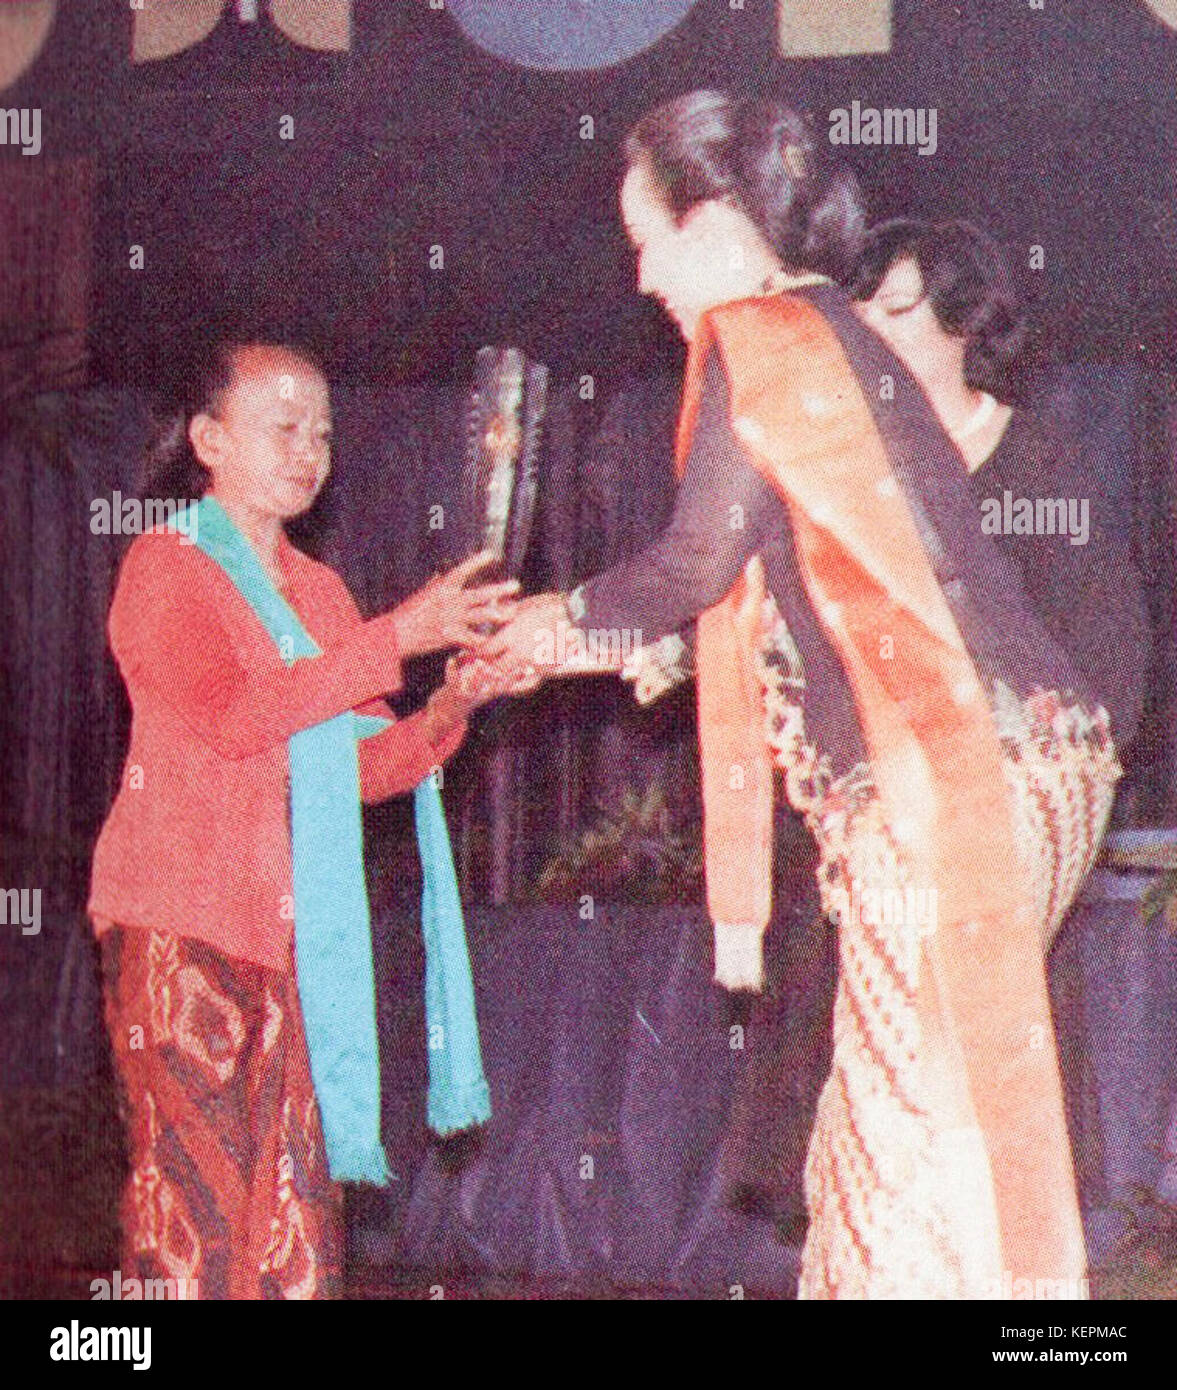 Suparmi receiving Citra for Best Supporting Actress, Festival Film